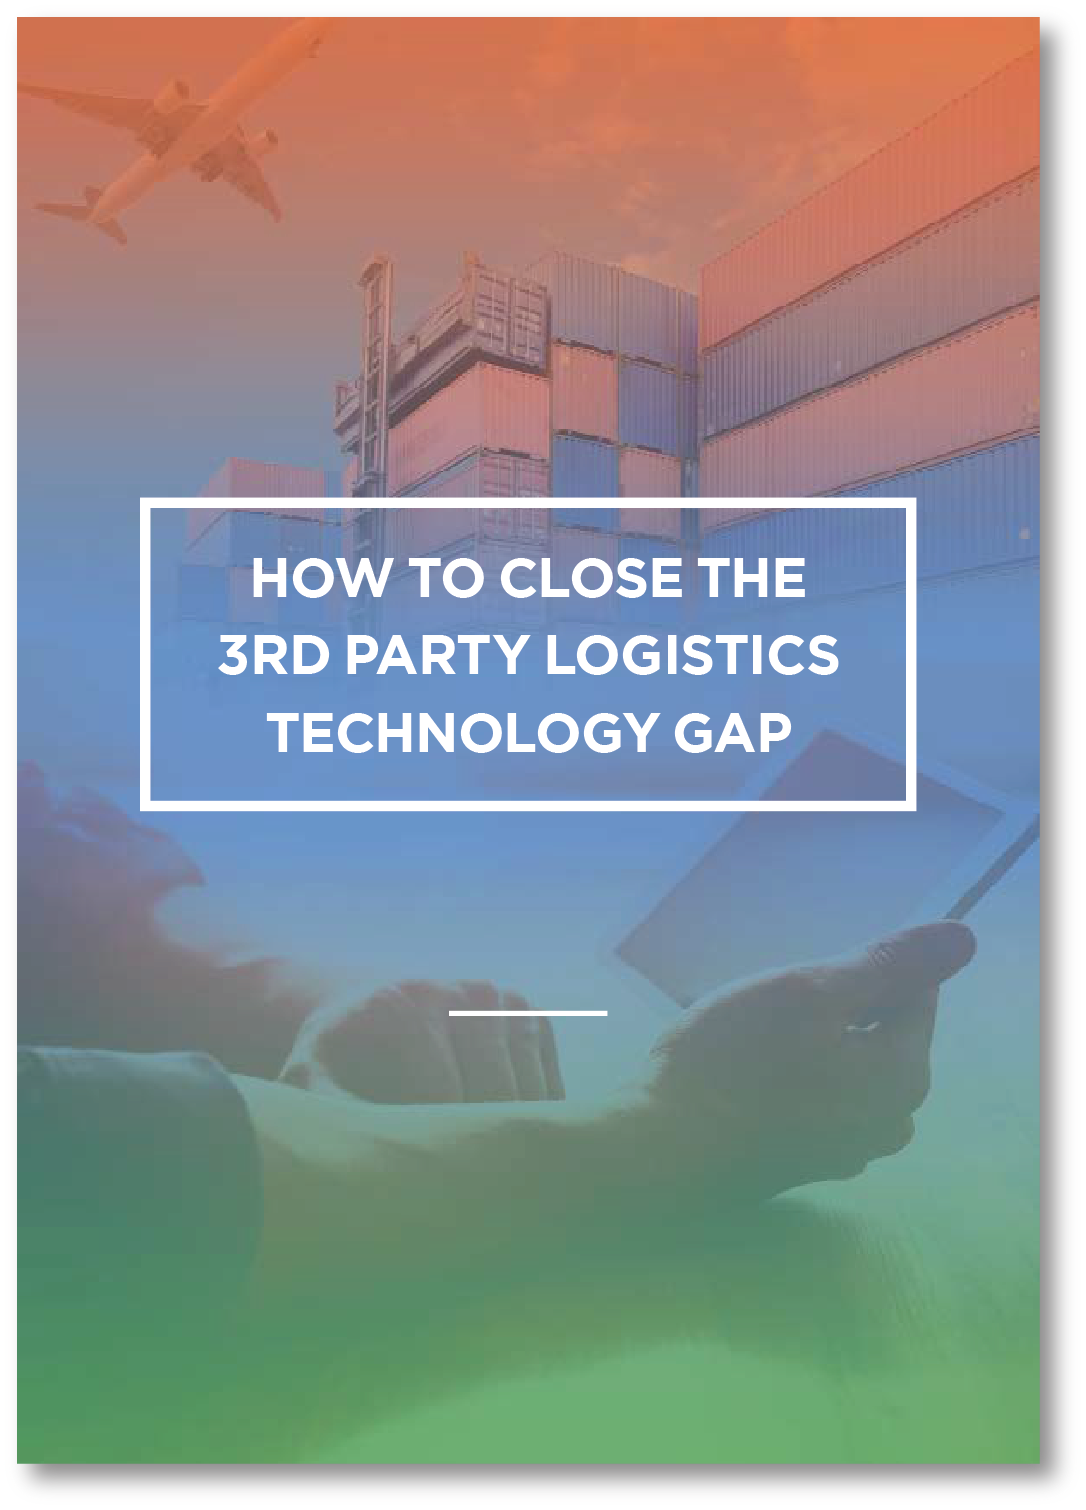 Cover page of Gravity white paper- Closing the 3rd Party Logistics Technology Gap